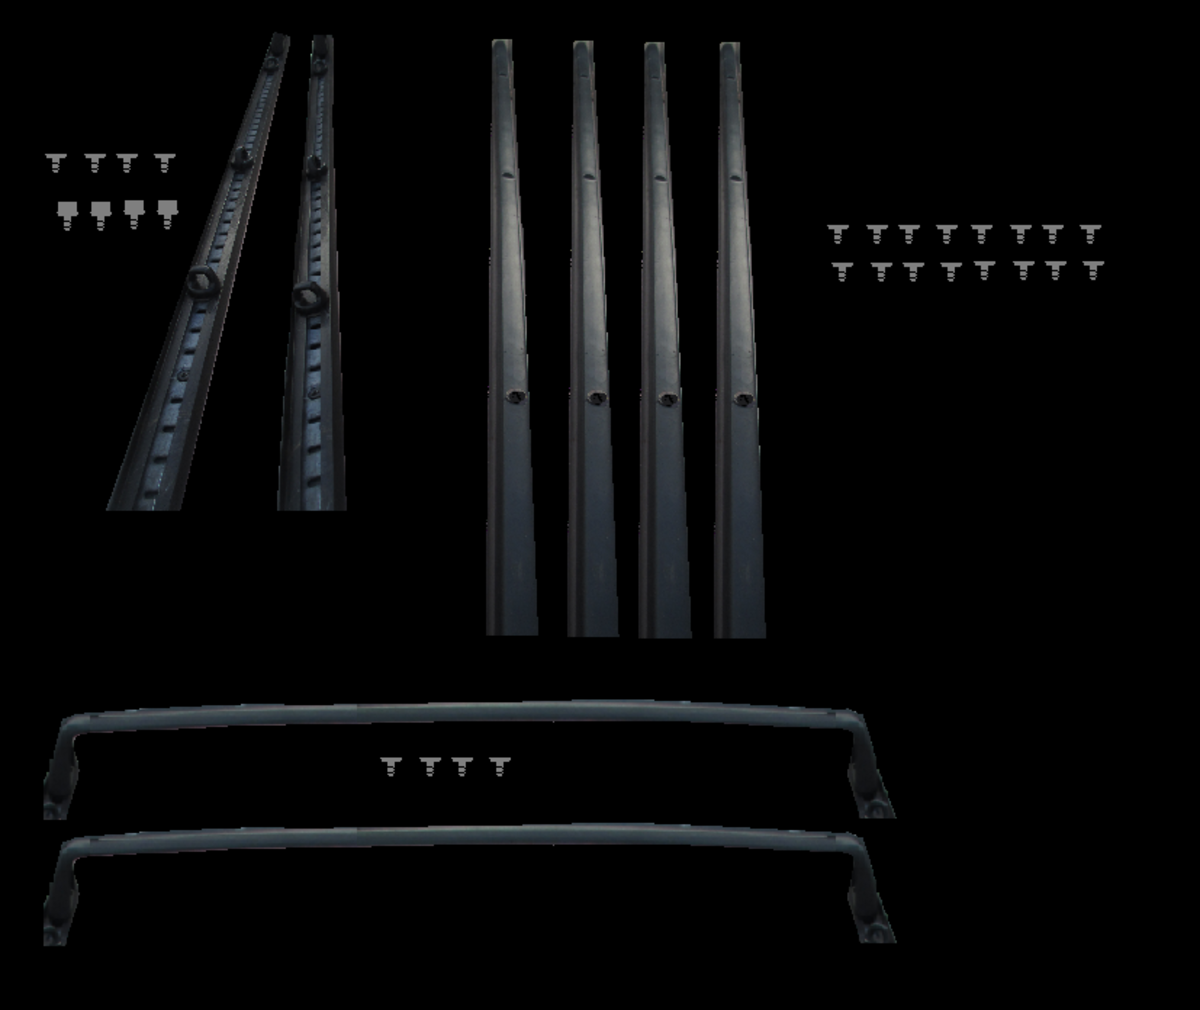 Clockwise from top left: 2 base rails with 8 attaching screws, 4 support rails with 16 attaching screws and 2 end rails with 4 attaching screws.